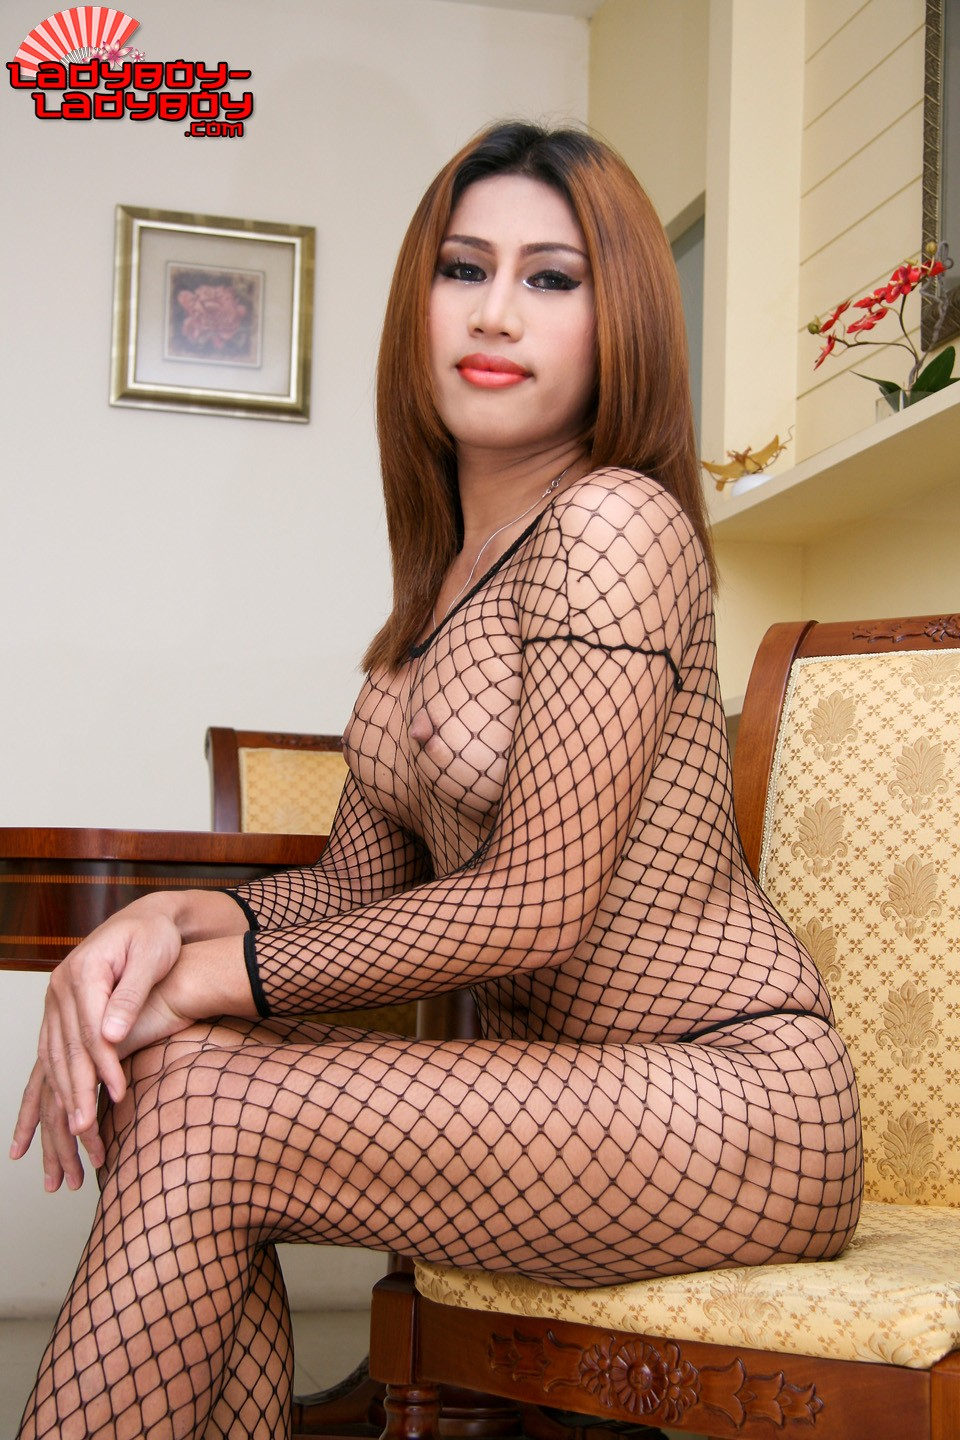 LADYBOY AMY BLOG